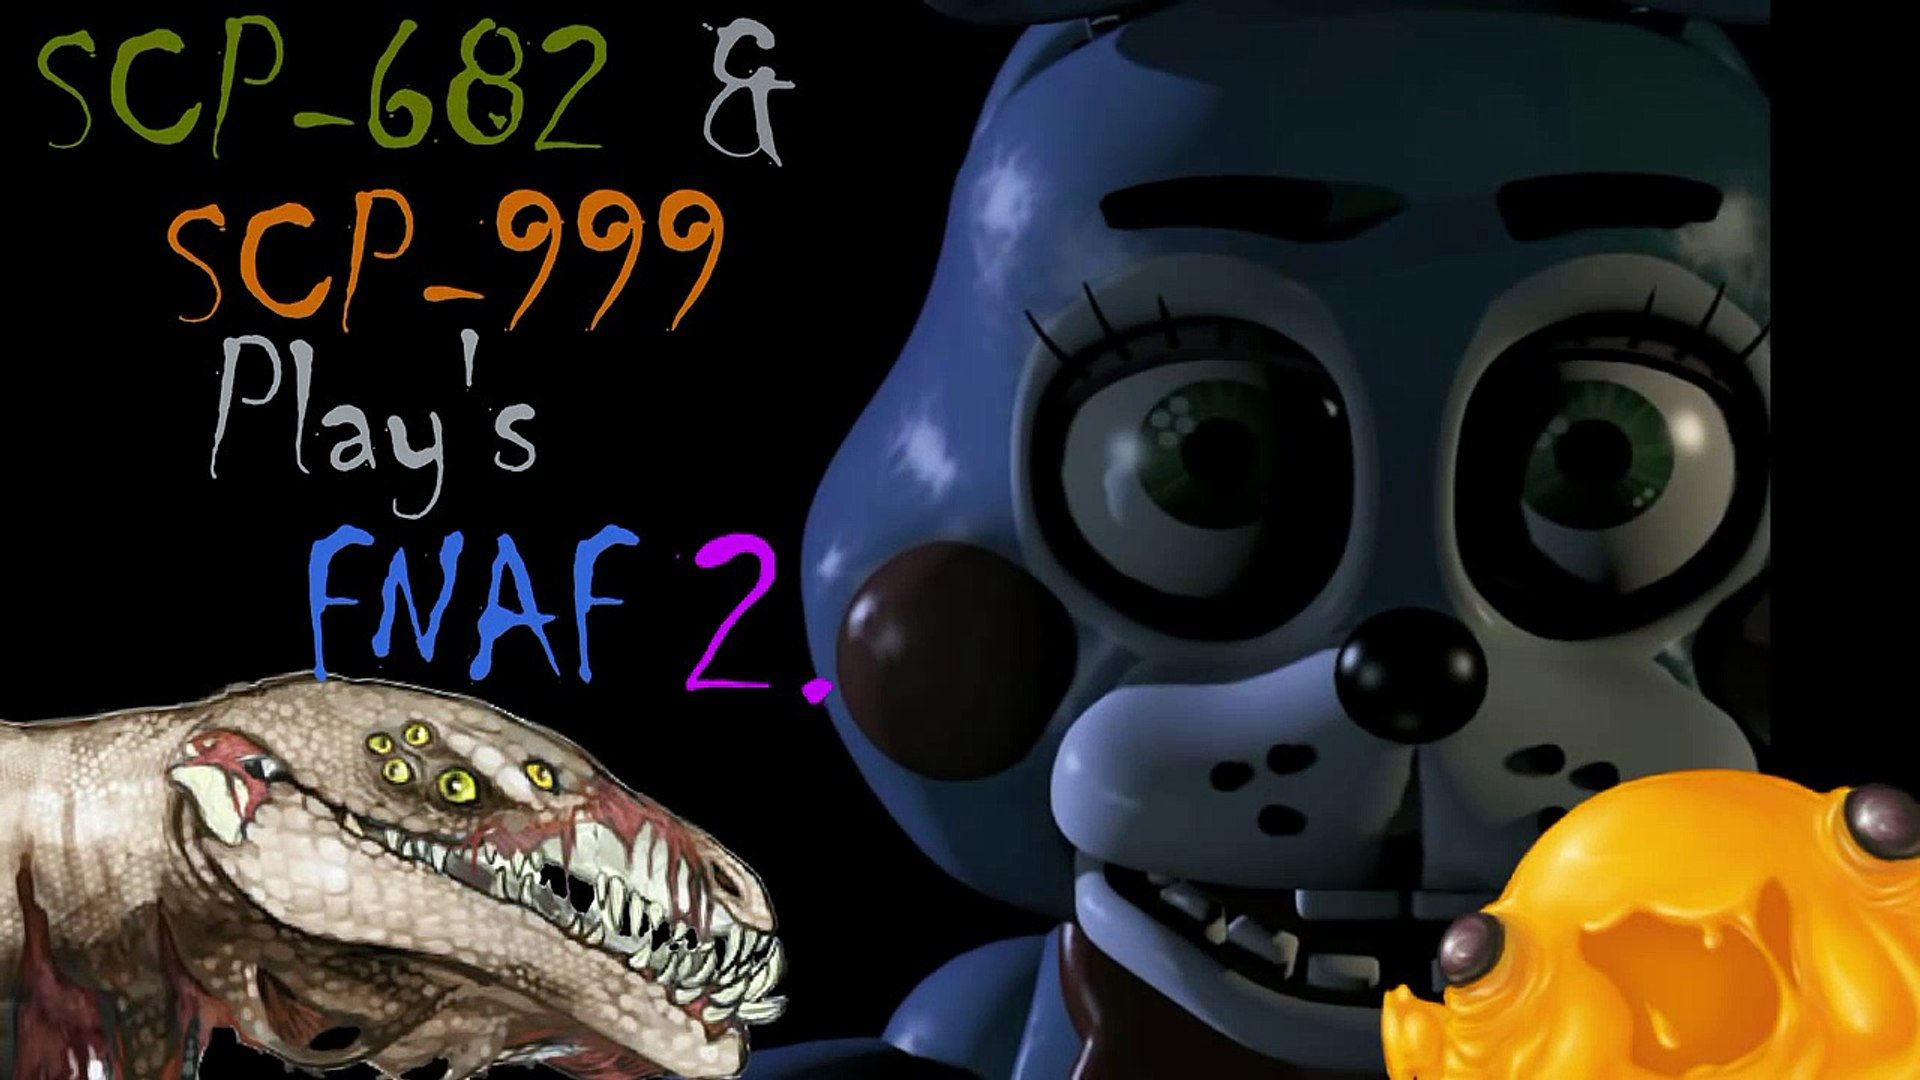 SCP-682 and SCP-999 Plays - Five Nights at Freddys 2 (Night #1)